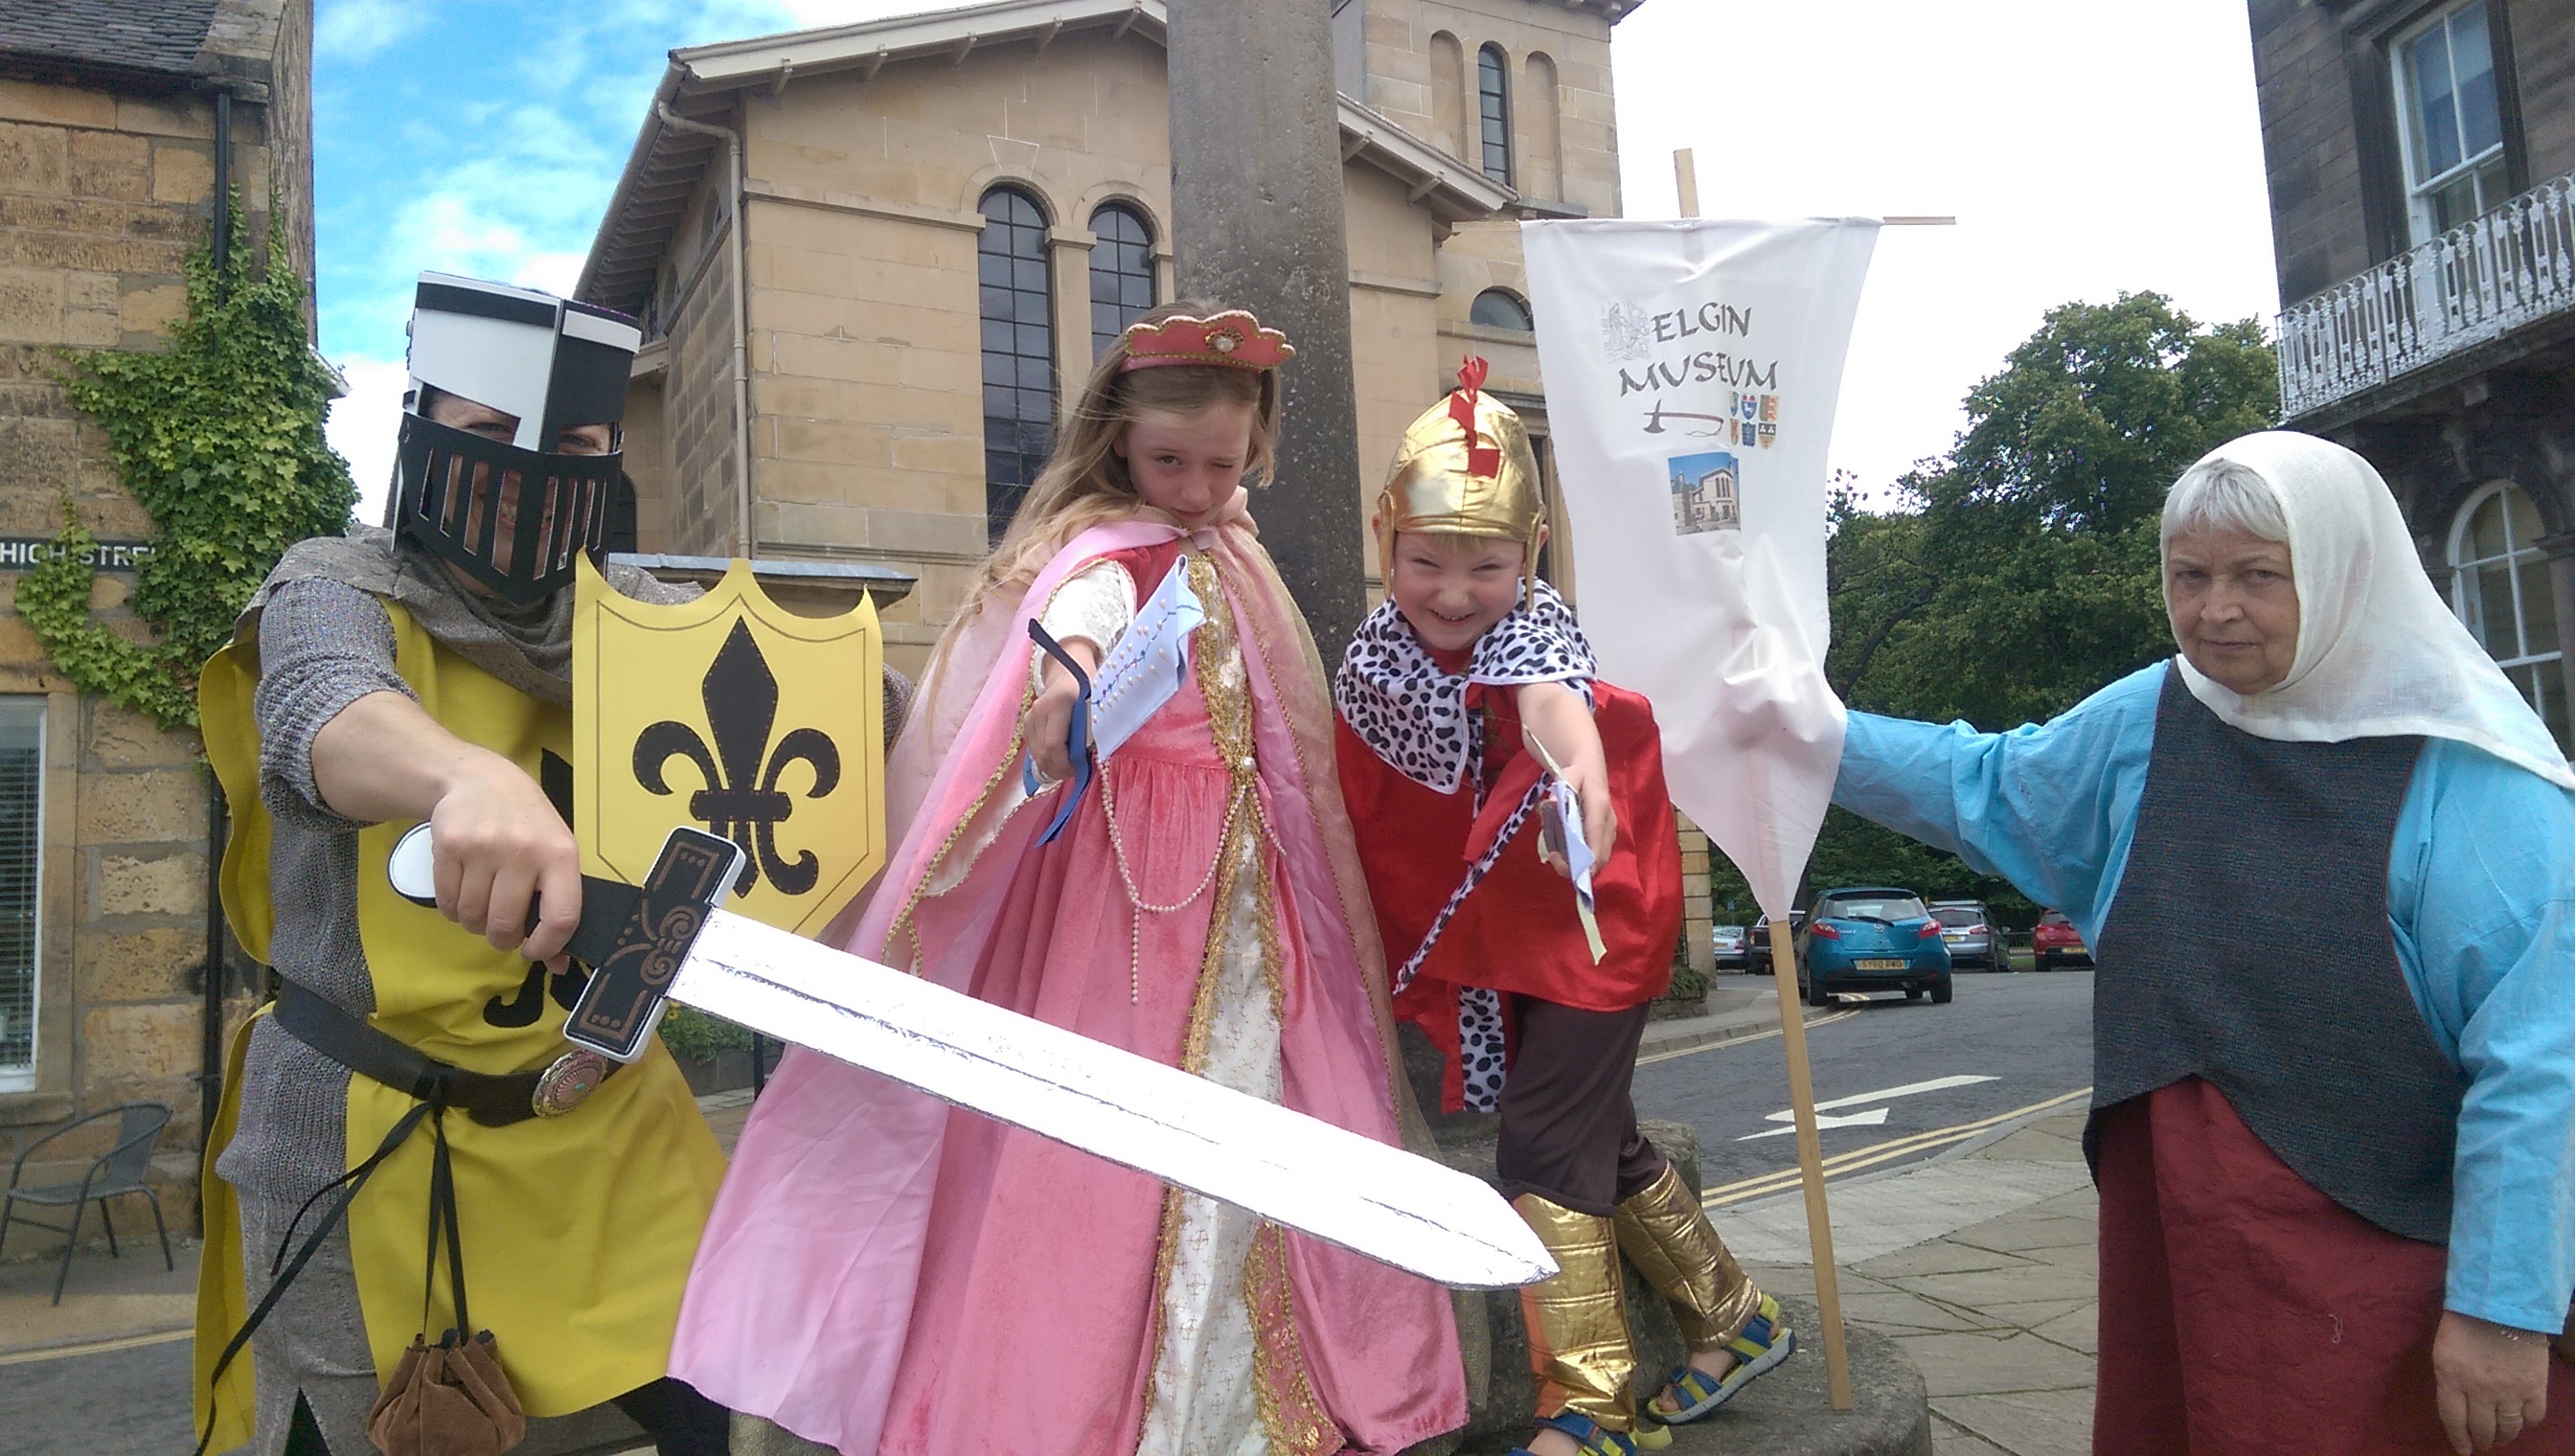 Museum volunteer Claire Herbert, West End pupils Fiona and Donald Coull and volunteer Mary Shand joined the assault on the castle.